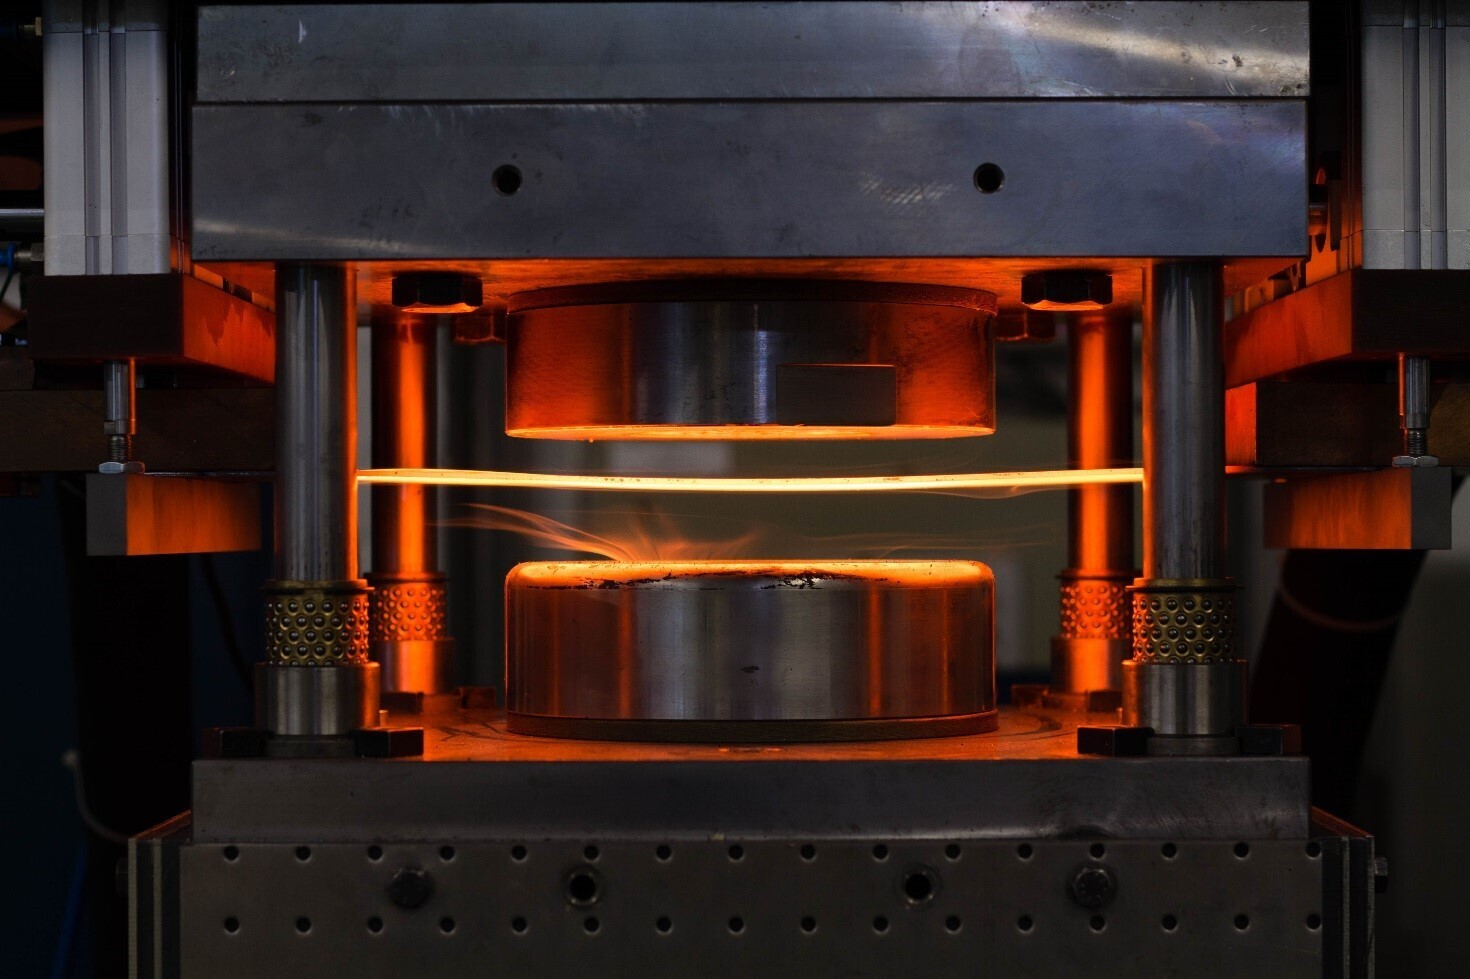 Annealed steel sheet in hot gas bulge test